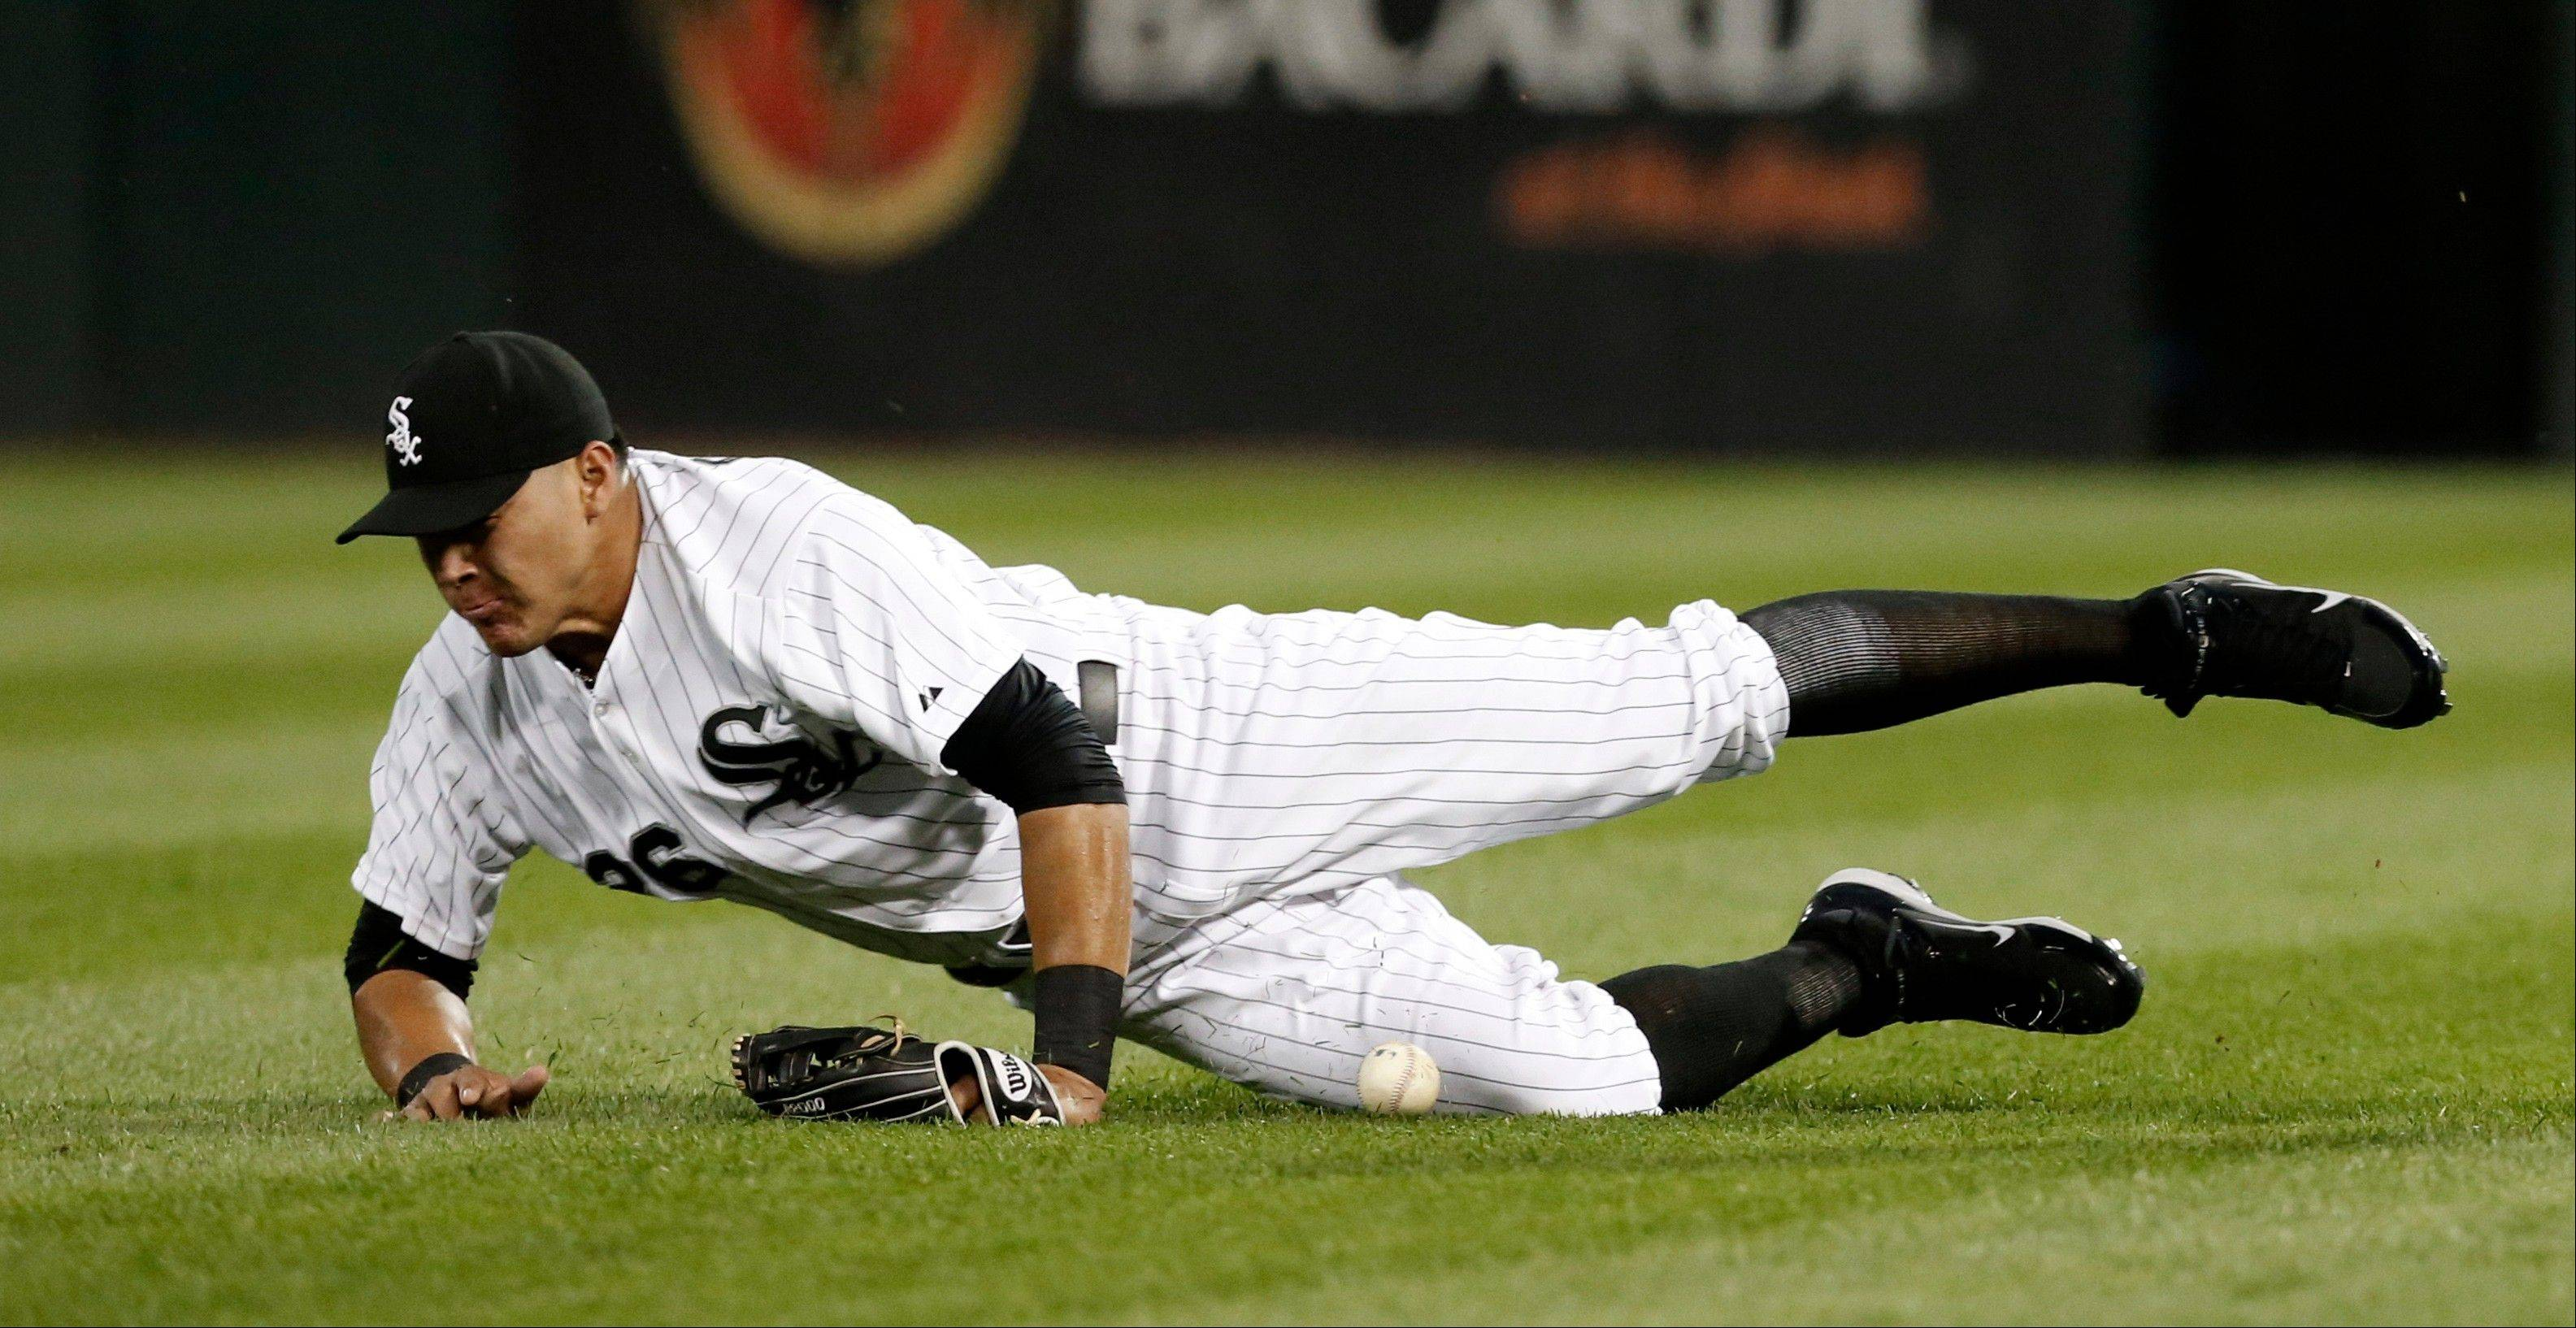 White Sox center fielder Avisail Garcia is unable to catch a fly ball hit by Houston Astros' Jonathan Villar during the third inning of a baseball game Tuesday, Aug. 27, 2013, in Chicago.